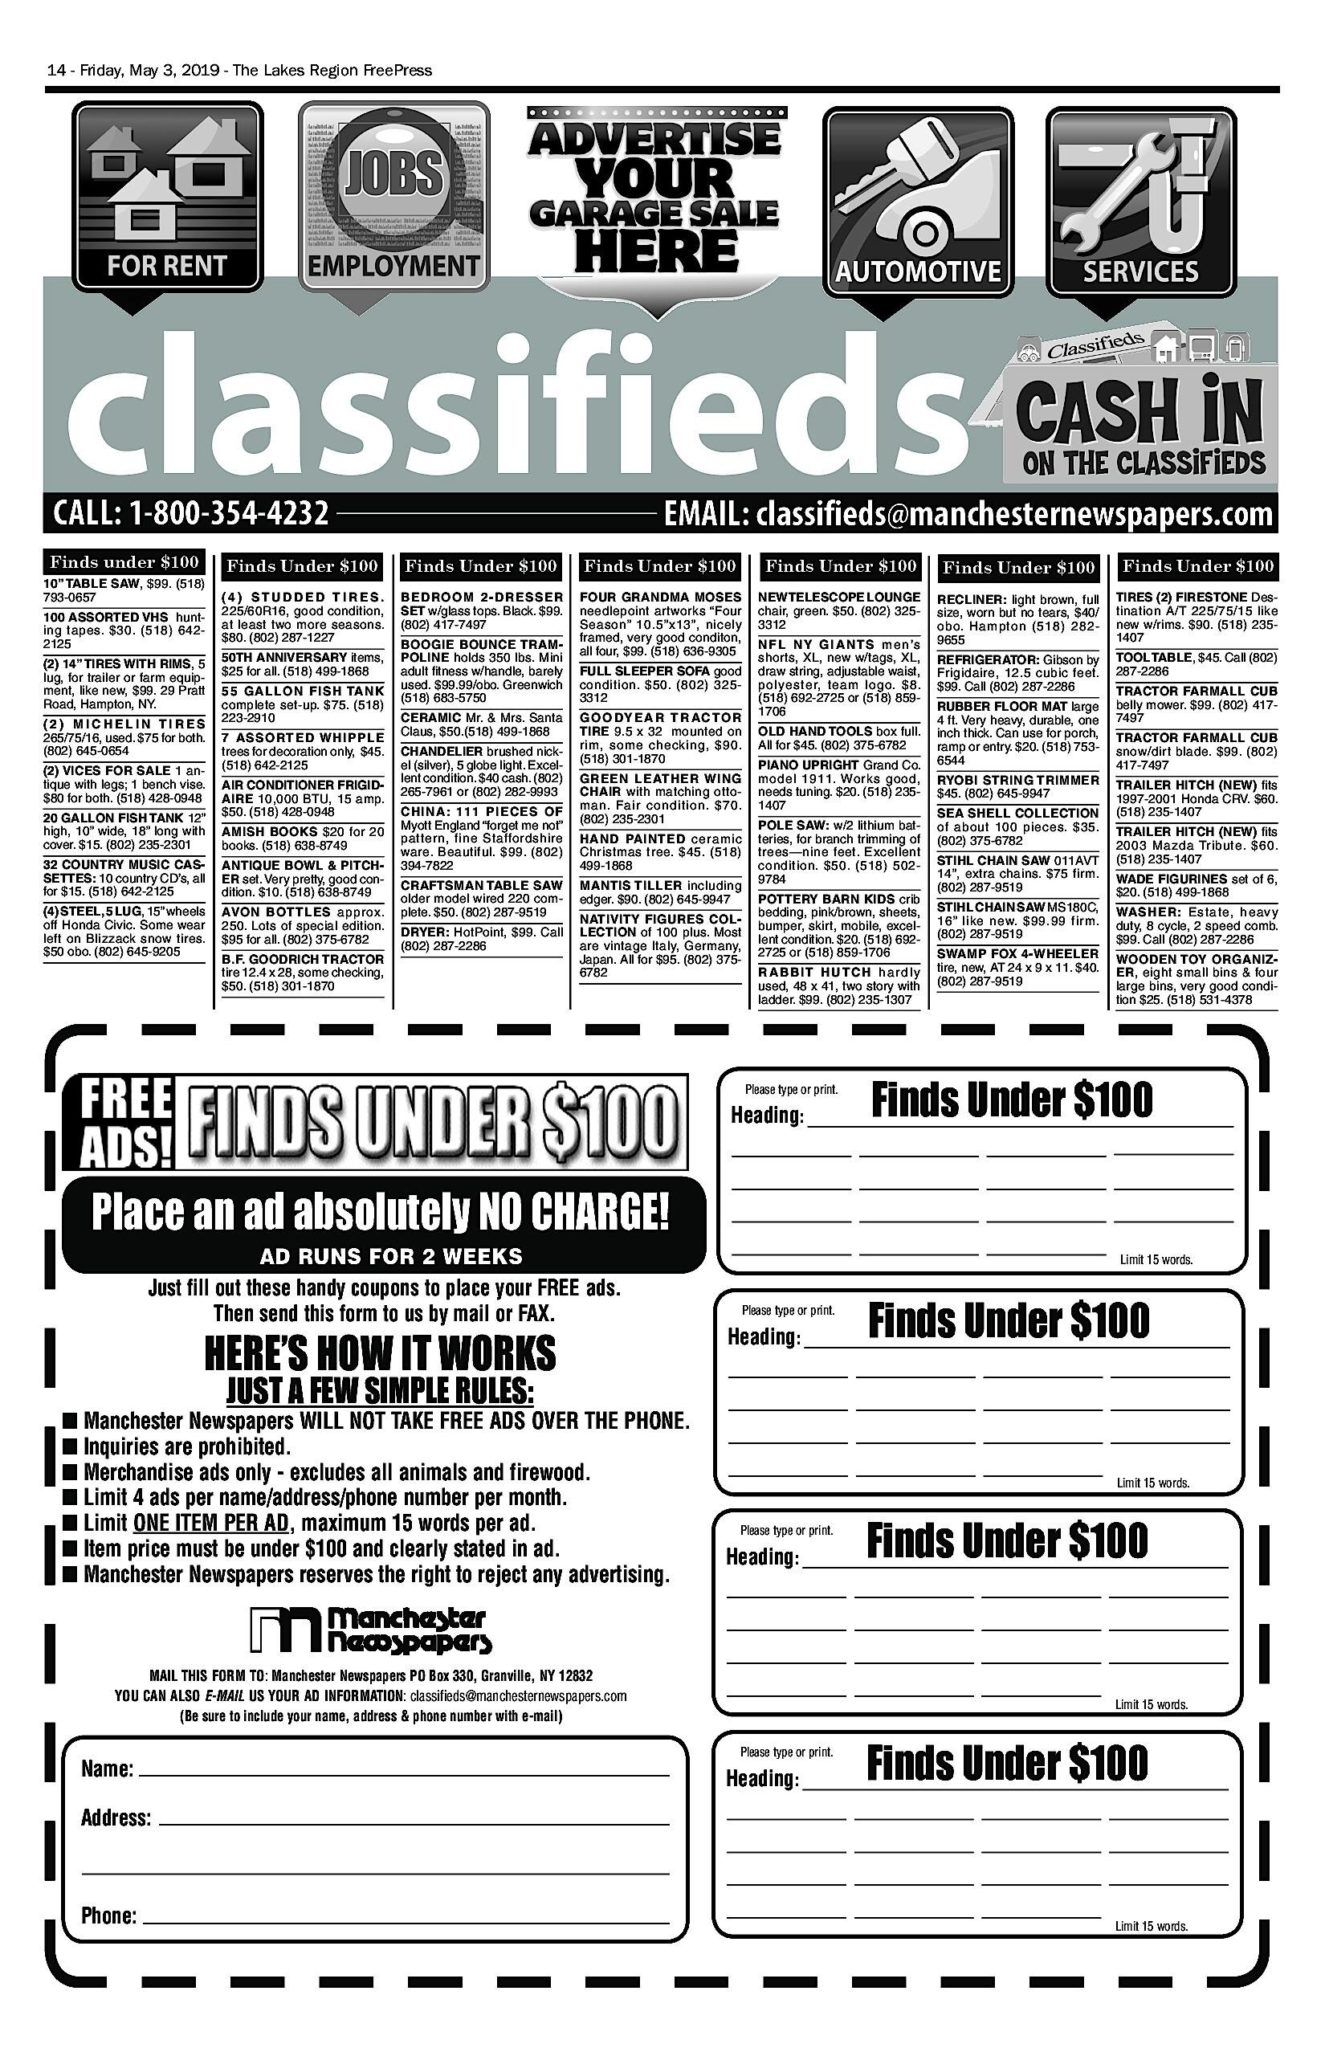 Lakes Classifieds – 05/03/19